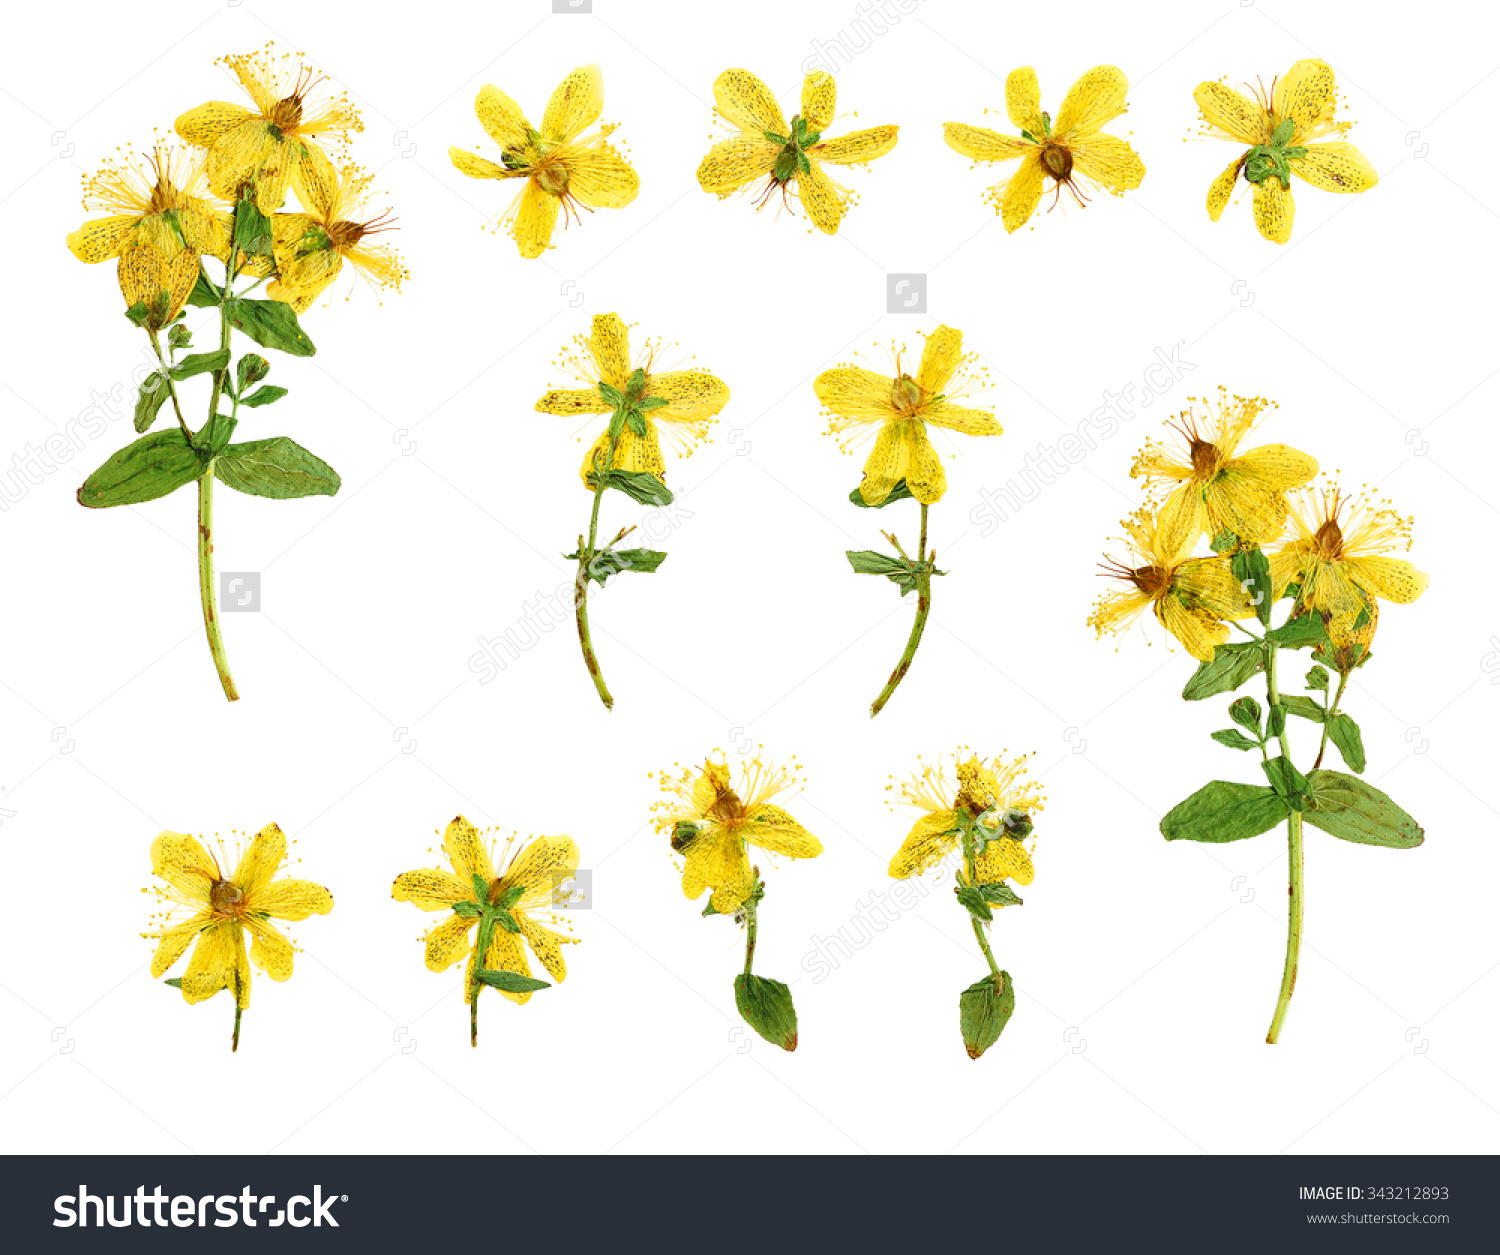 Set Of Pressed And Dried Flowers Hypericum Perforatum Photographed.